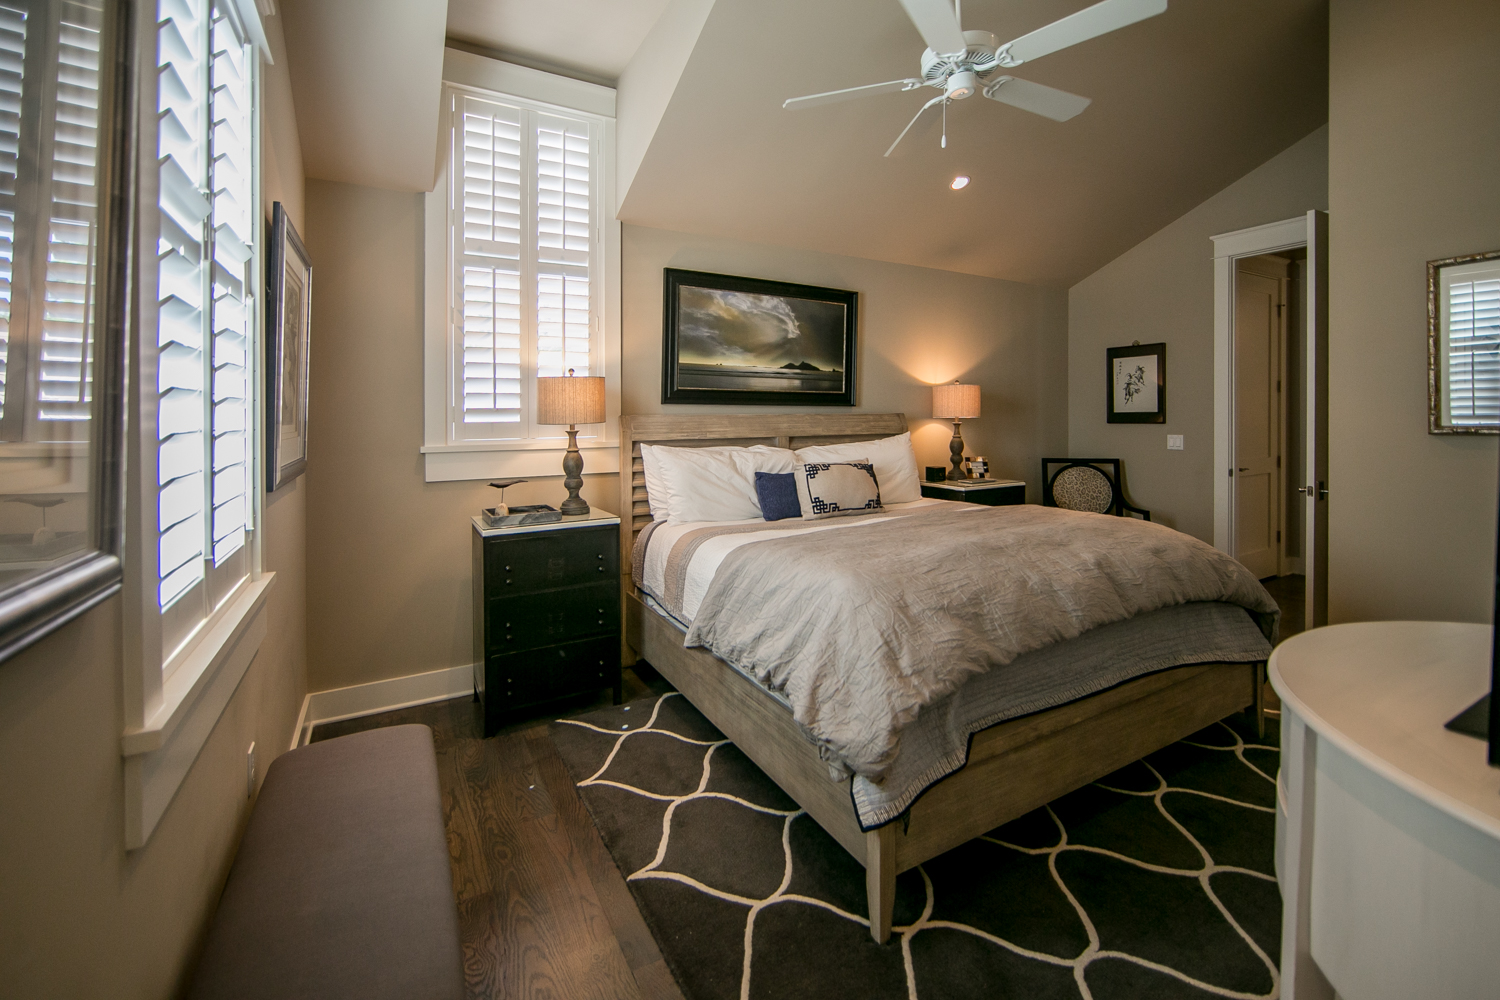 Second king master suite with exquisite furnishings and en-suite bathroom